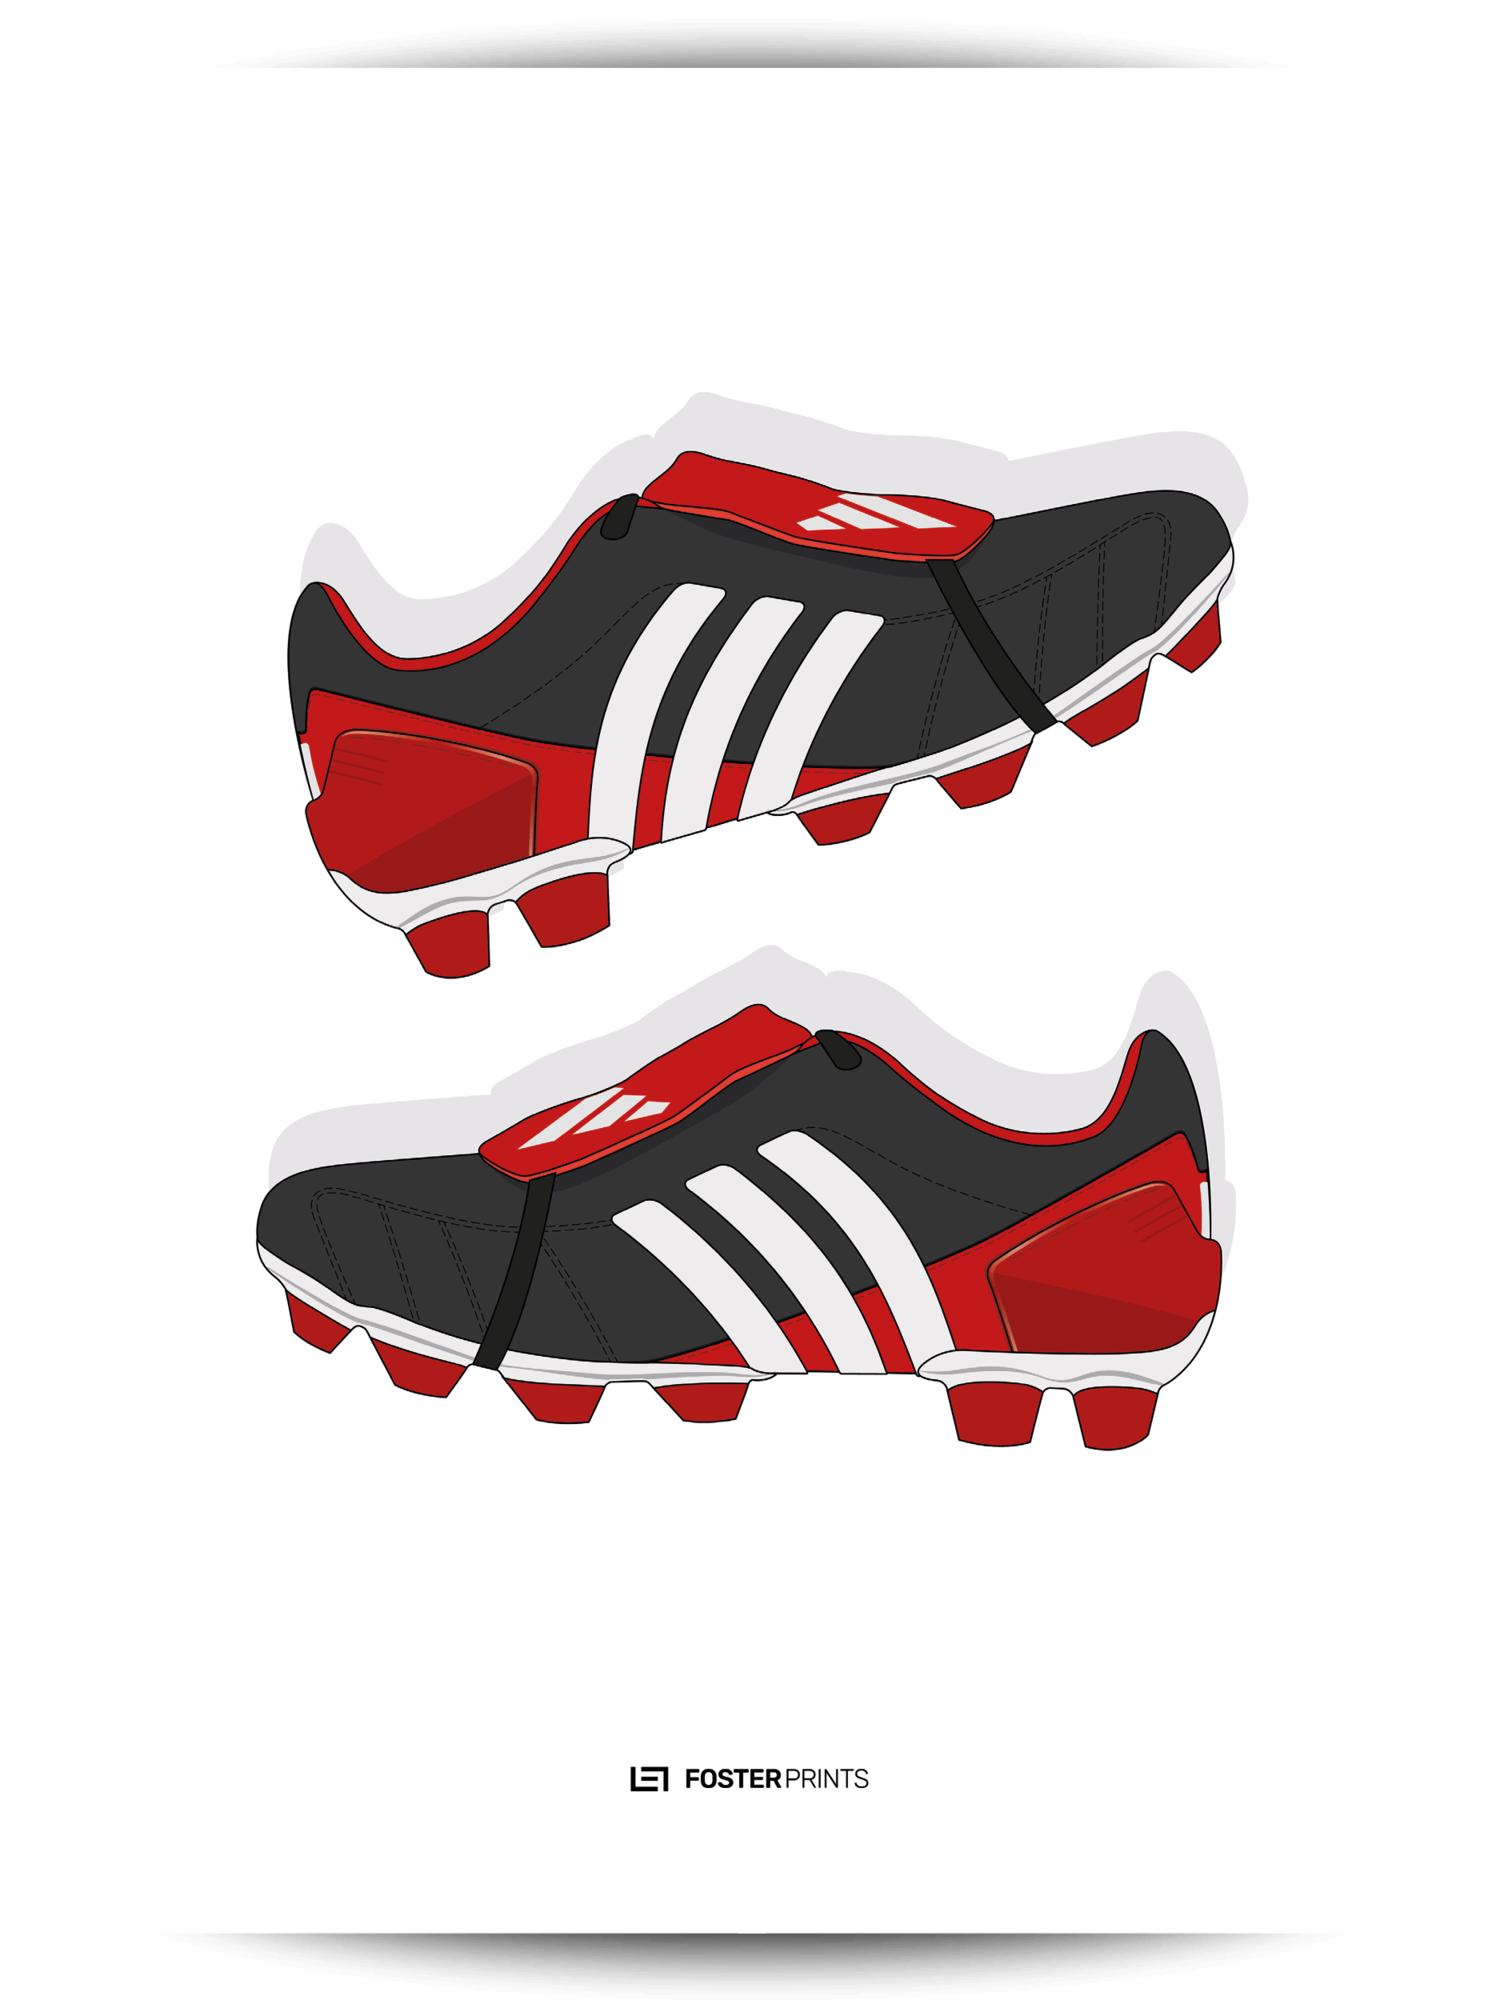 buy online c9160 aa3a6 Adidas Predator Mania Red Black Football Poster — Foster Prints -  Illustrated Football Posters